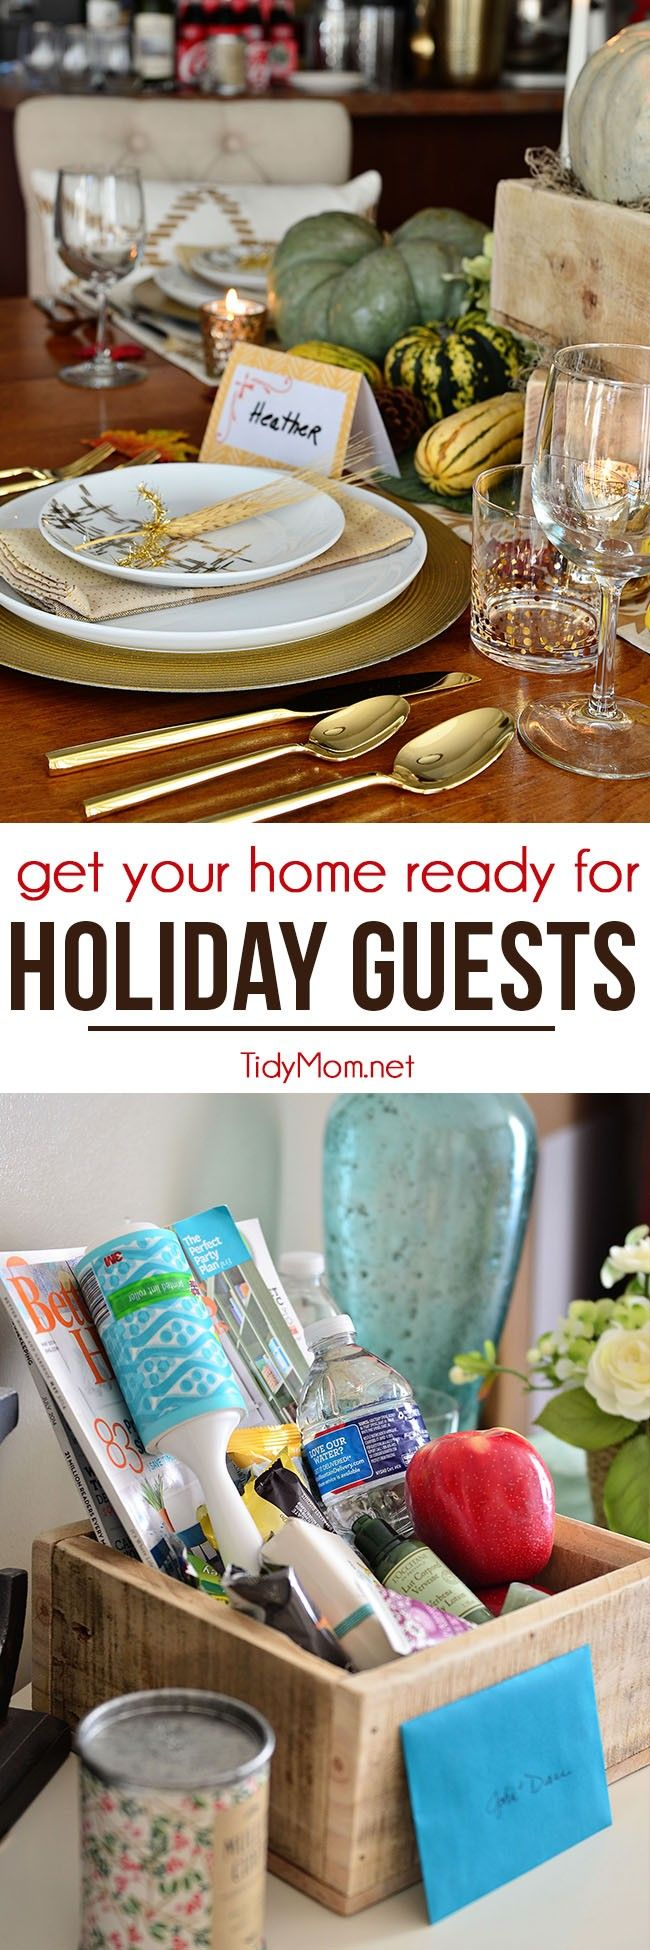 The holidays often involve party and overnight guests. Follow these holiday tips to get your home ready for guests. Such as, providing overnight guests with a small basket of things they might. Quick cleaning tip with Scotch-Brite cleaning tools and more at TidyMom.net